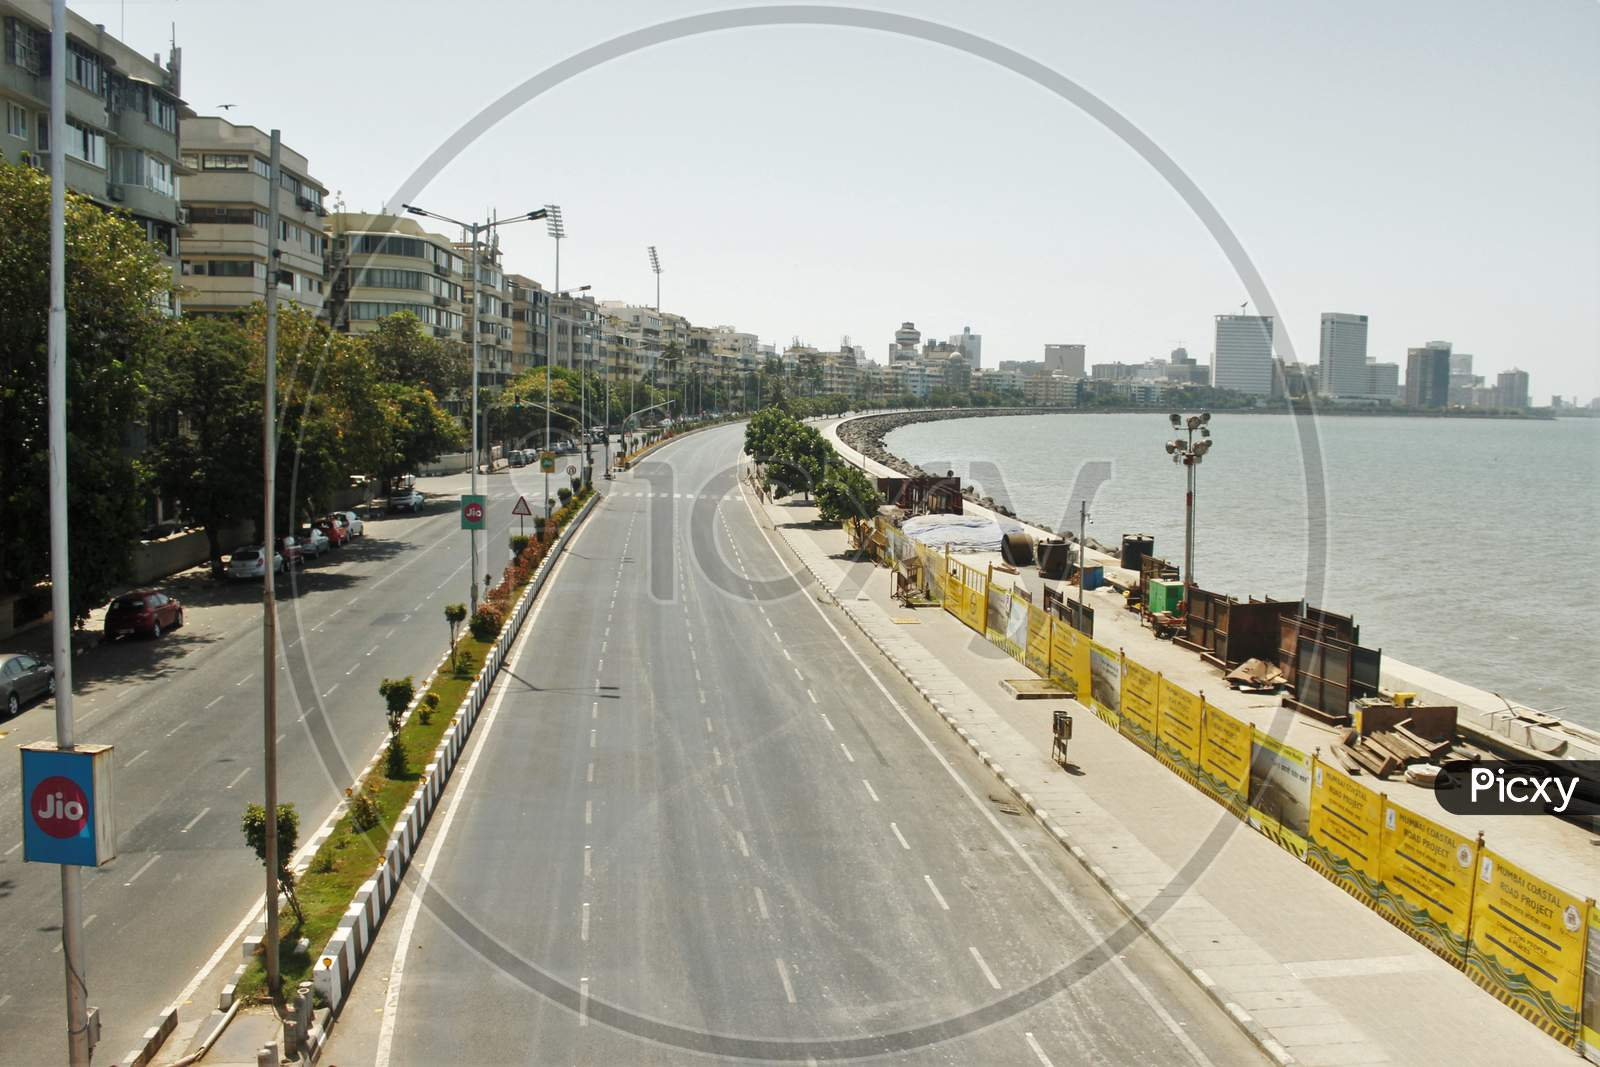 A View Of Deserted Roads Along Marine Drive During The 14-Hour Long Curfew To Limit The Spreading Of Coronavirus Disease (Covid-19) In The Country, In Mumbai, India On March 22, 2020.